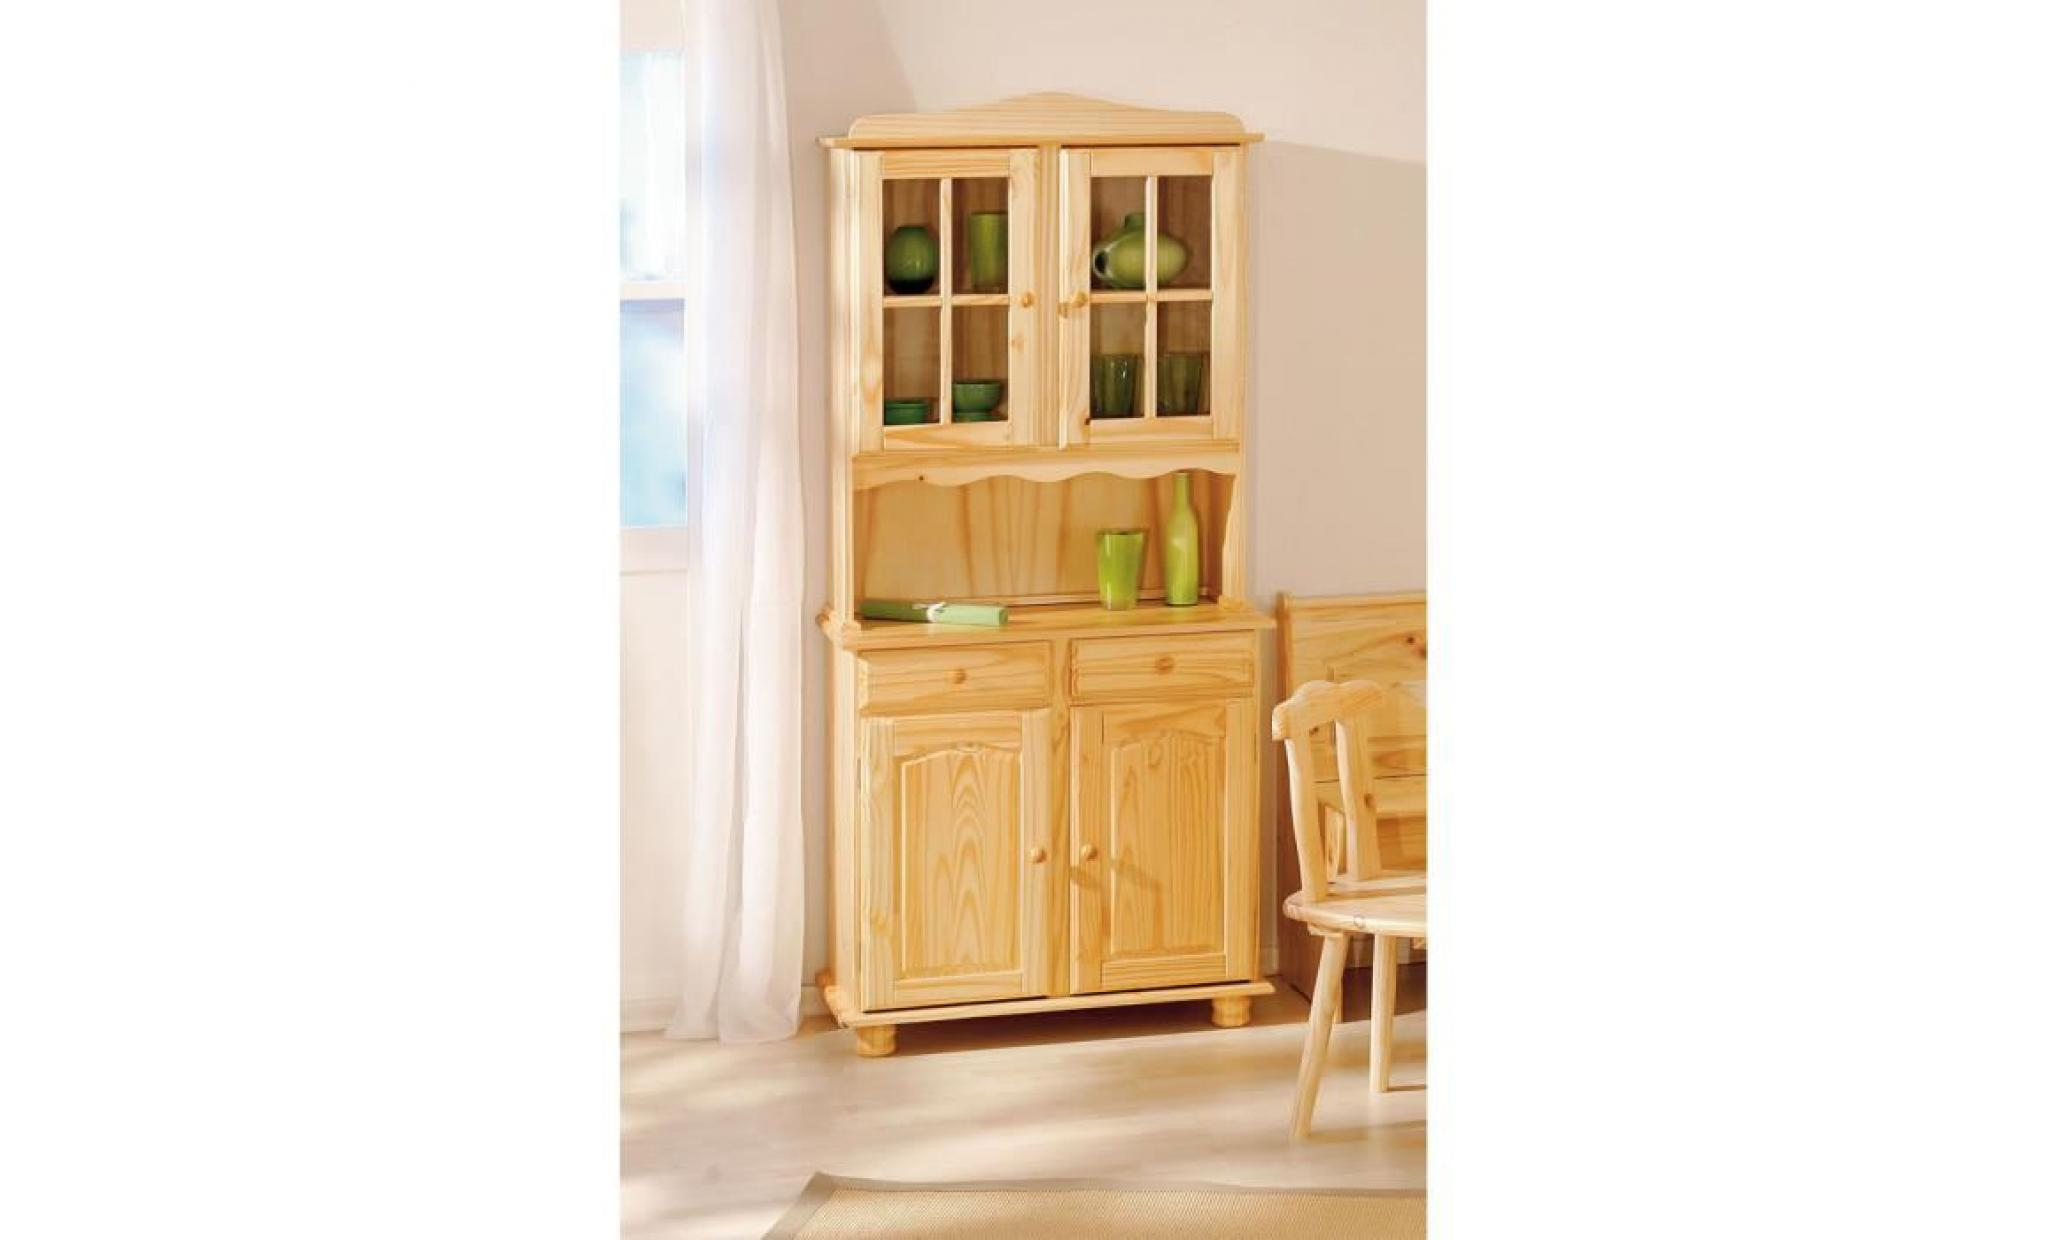 bahut vaisselier rustique en bois massif vernis achat vente buffet pas cher couleur et. Black Bedroom Furniture Sets. Home Design Ideas